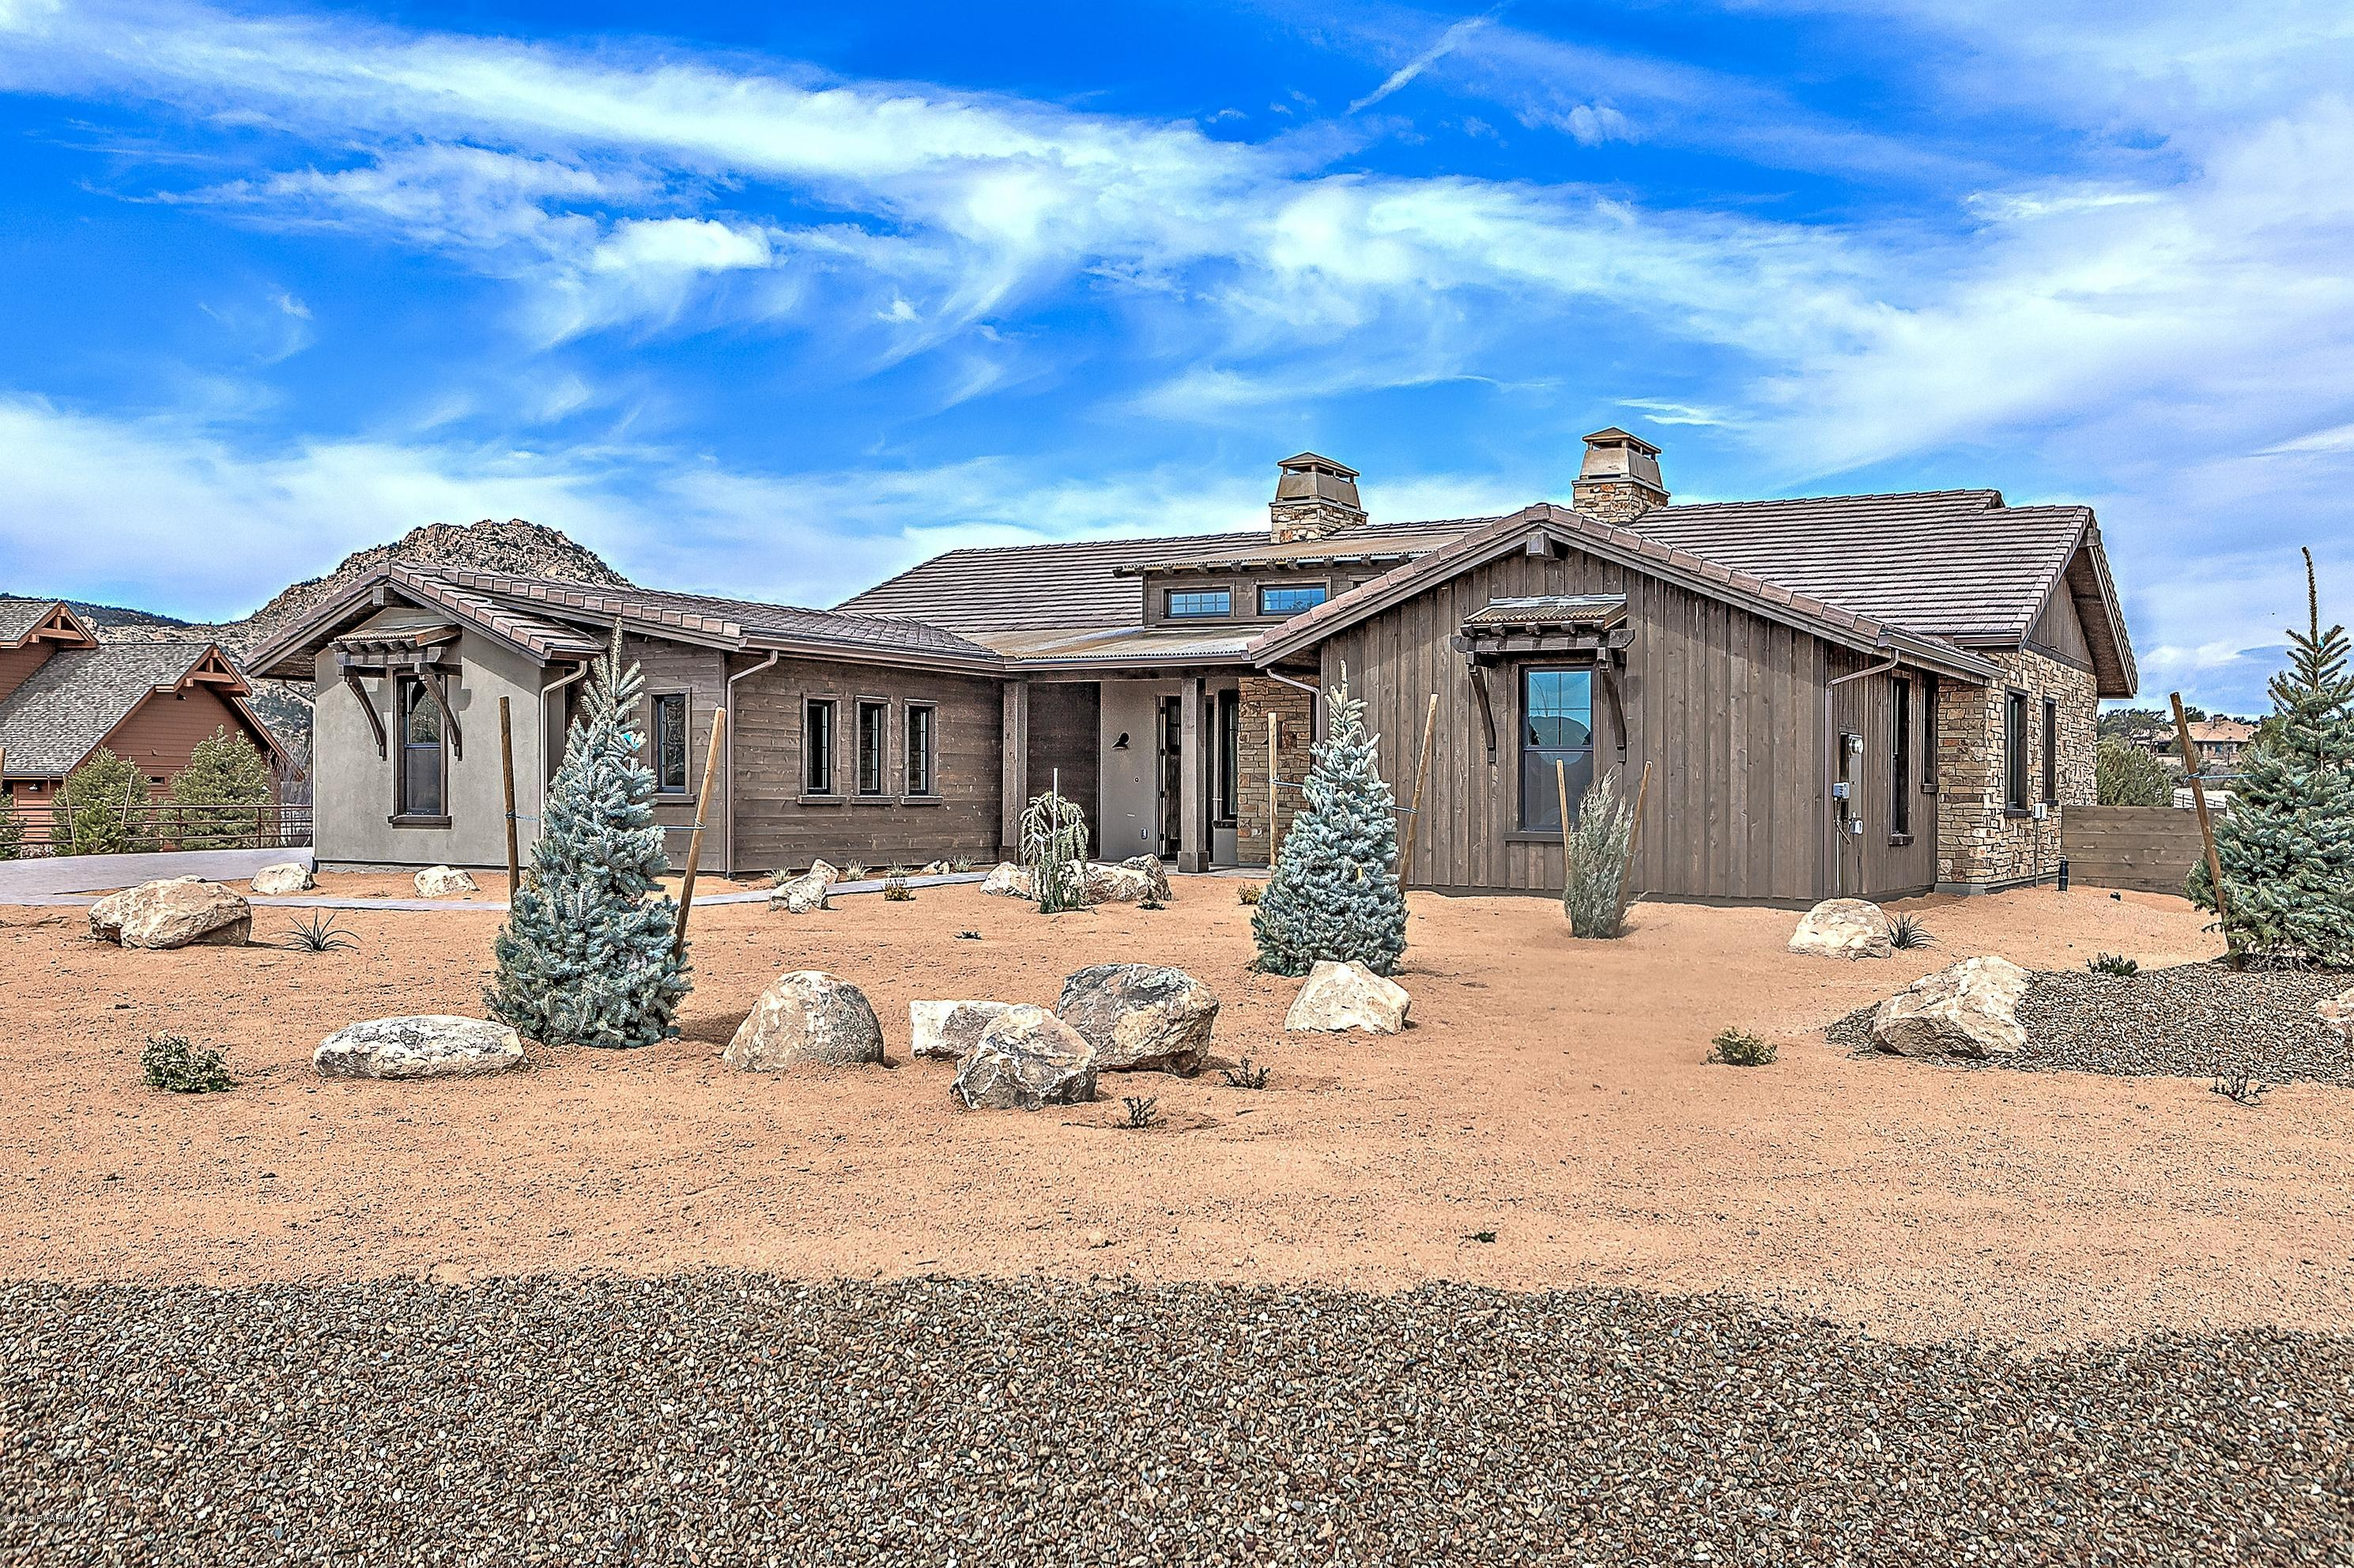 Photo of 9140 American Ranch, Prescott, AZ 86305